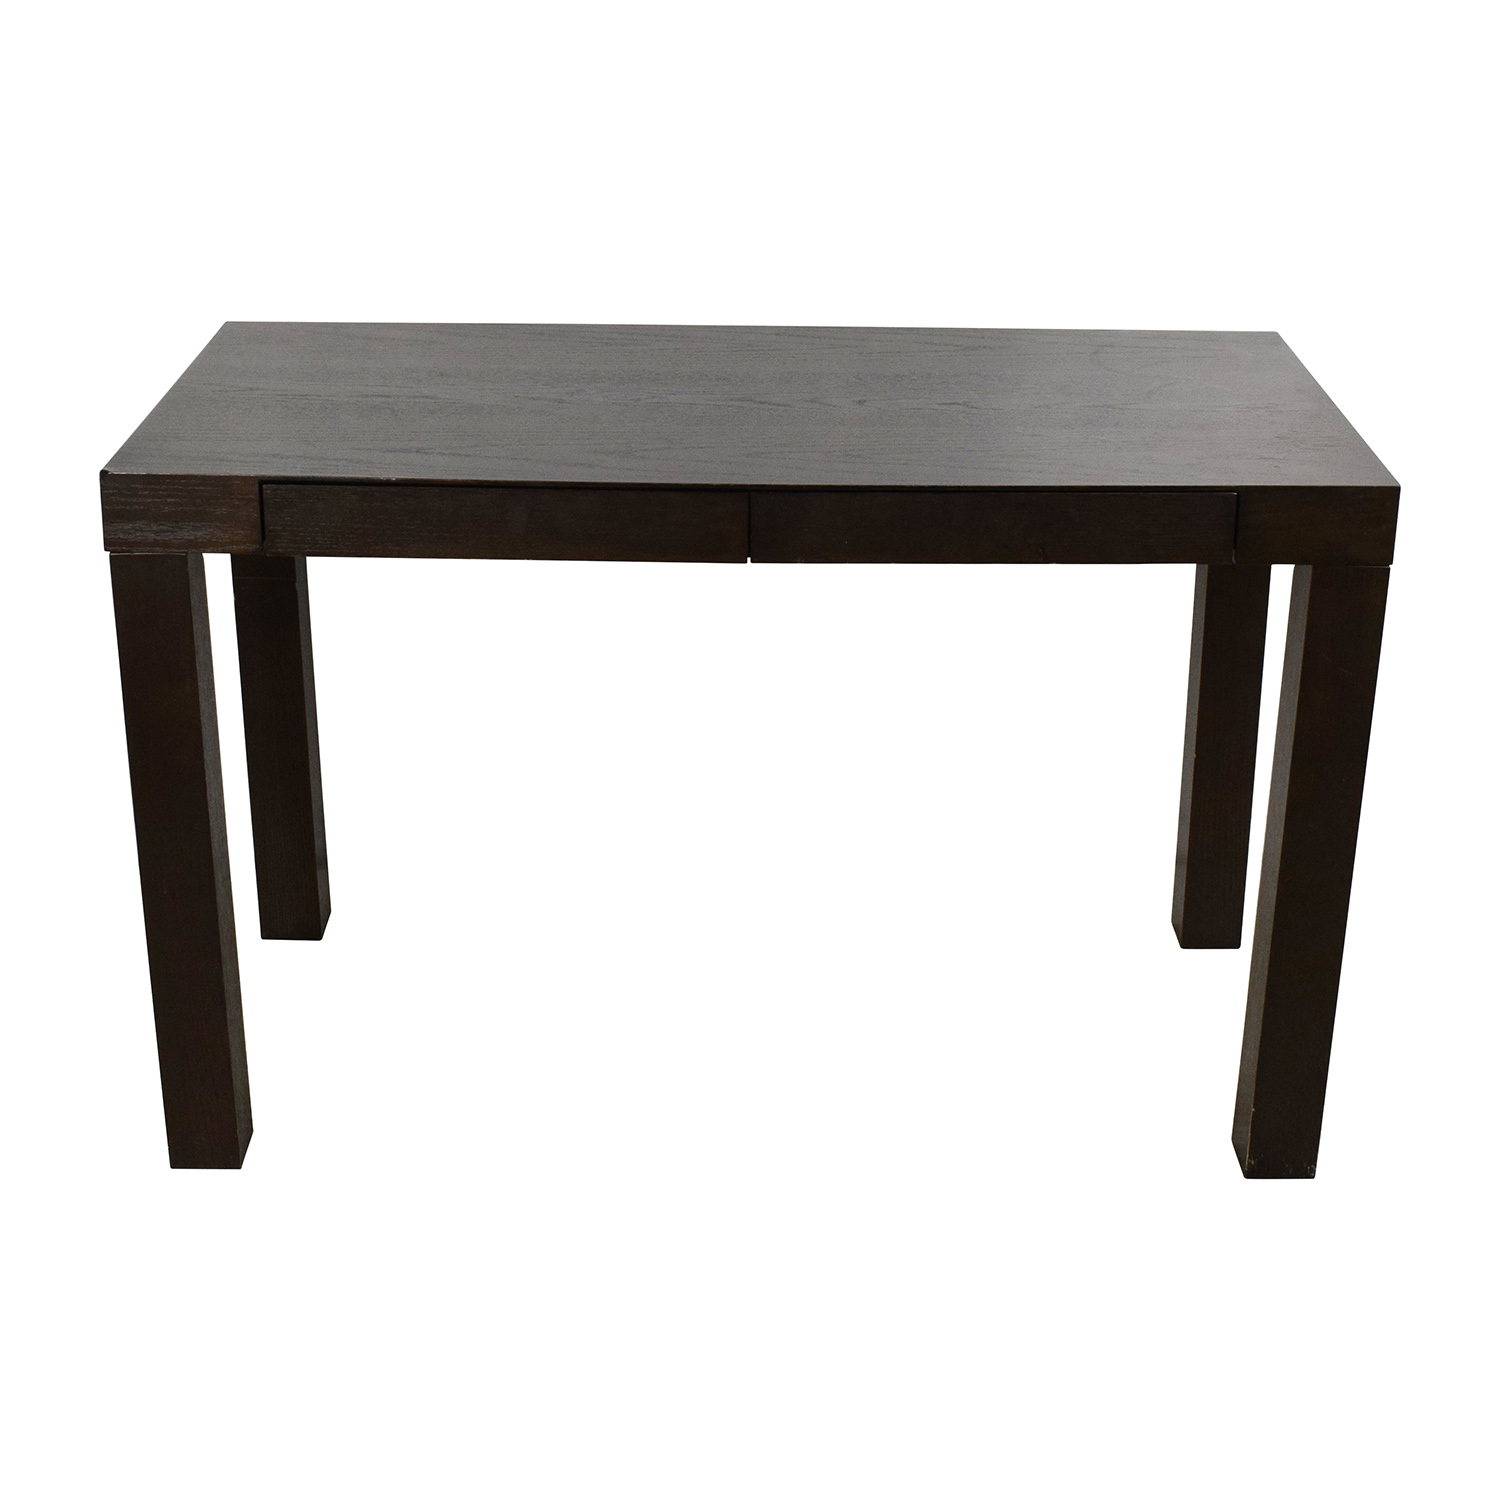 West Elm West Elm Parsons Brown Desk dimensions